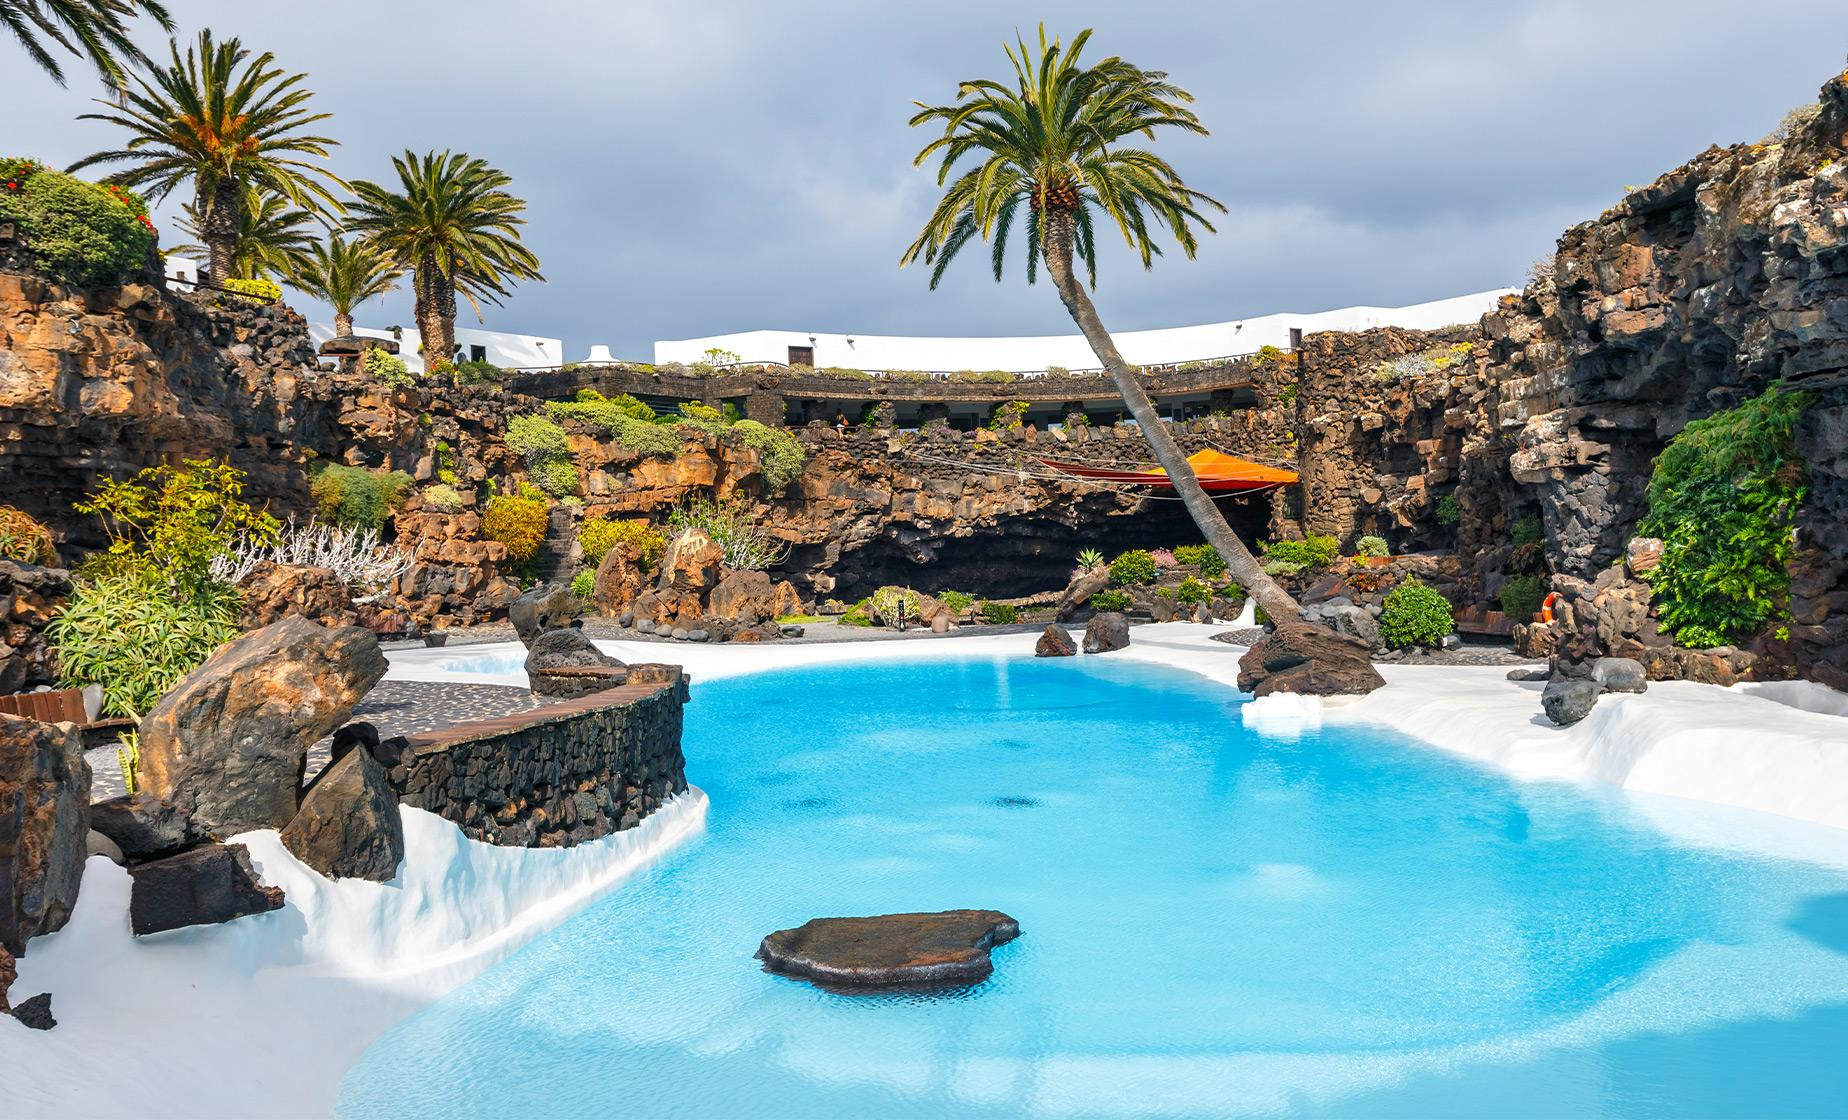 Private Jameos del Agua and Mirador del Rio - History, Culture and Viewpoints